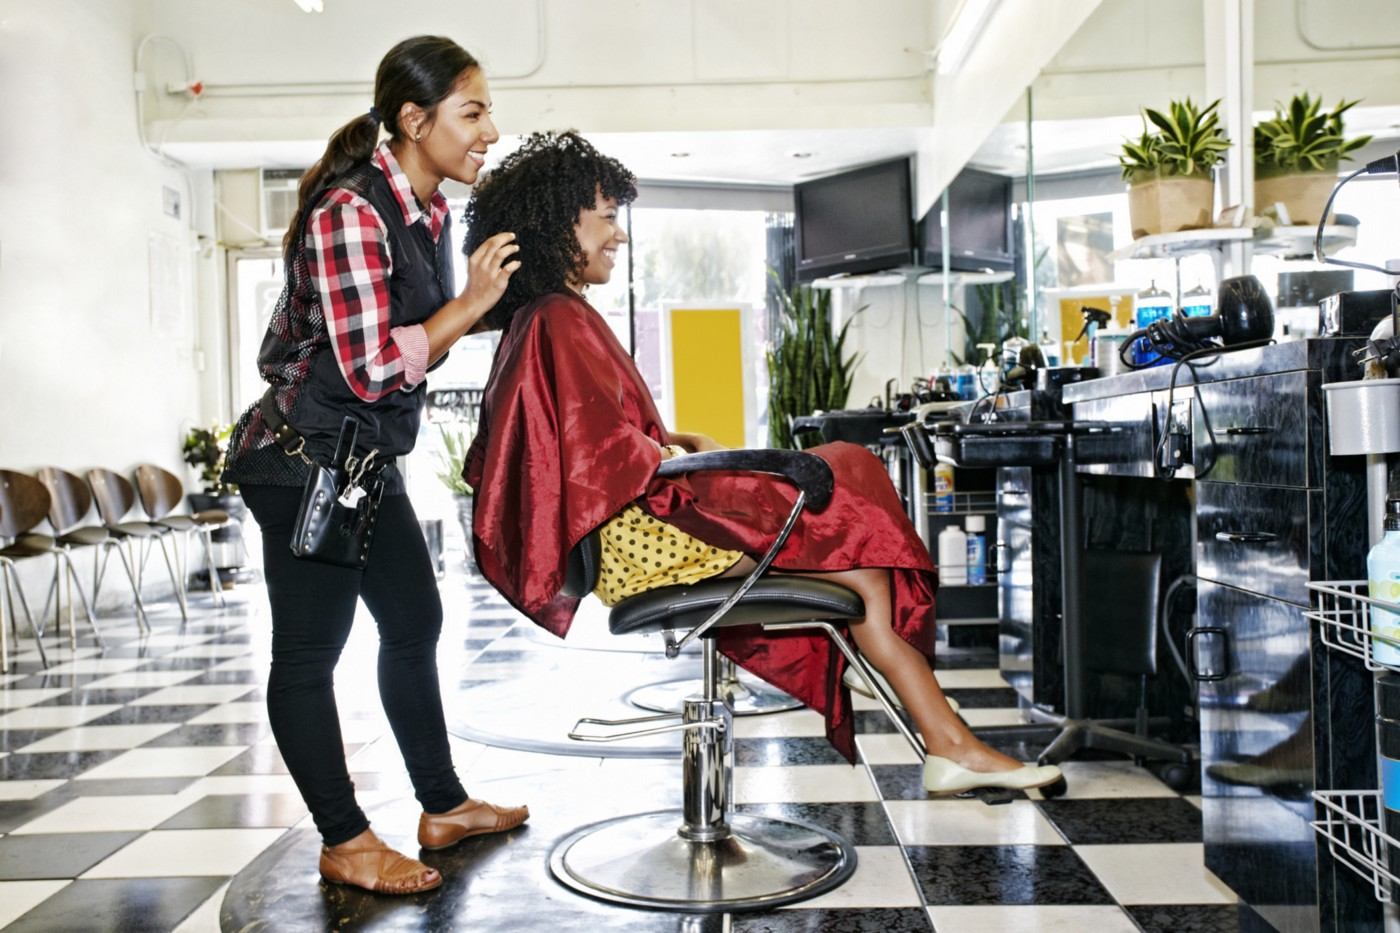 A photo of a black woman getting her hair done by a woman of color at a hair salon.